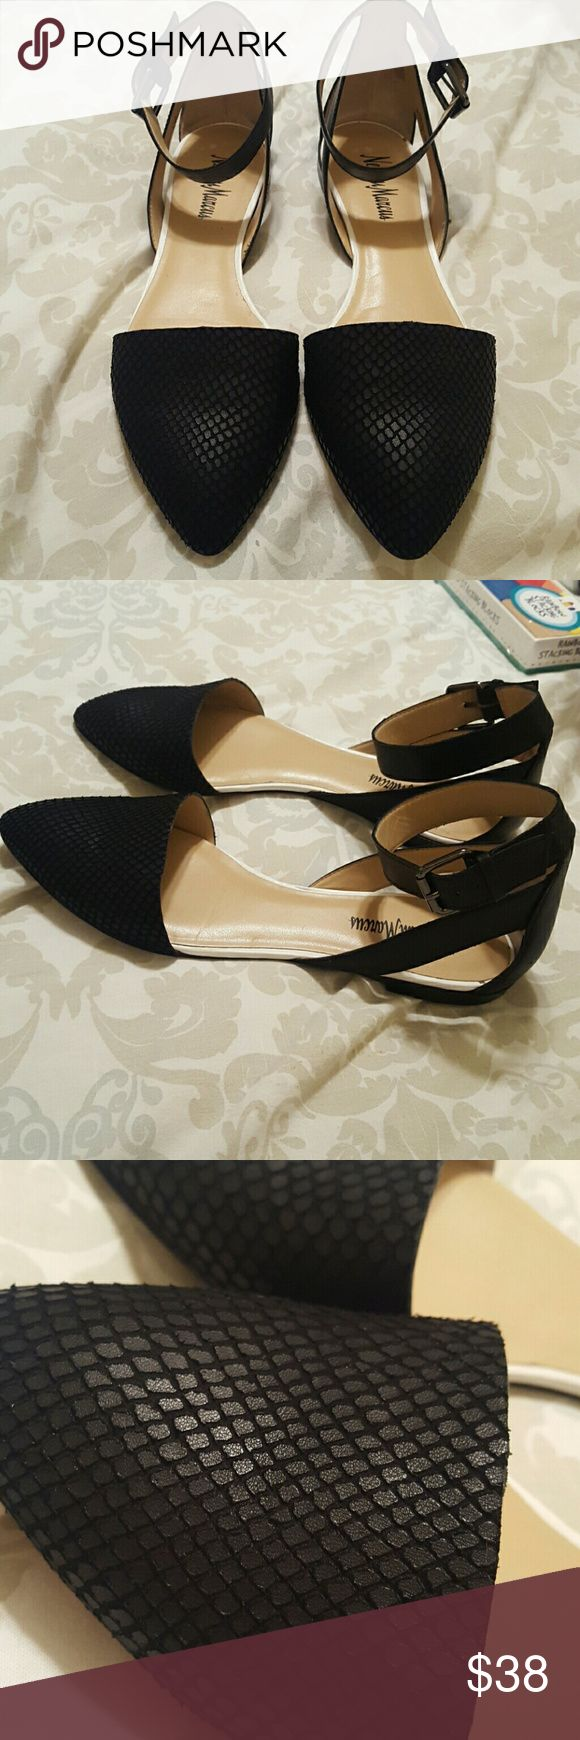 Neiman Marcus D'Orsay Flats Size 8  Great condition Neiman Marcus Shoes Flats & Loafers